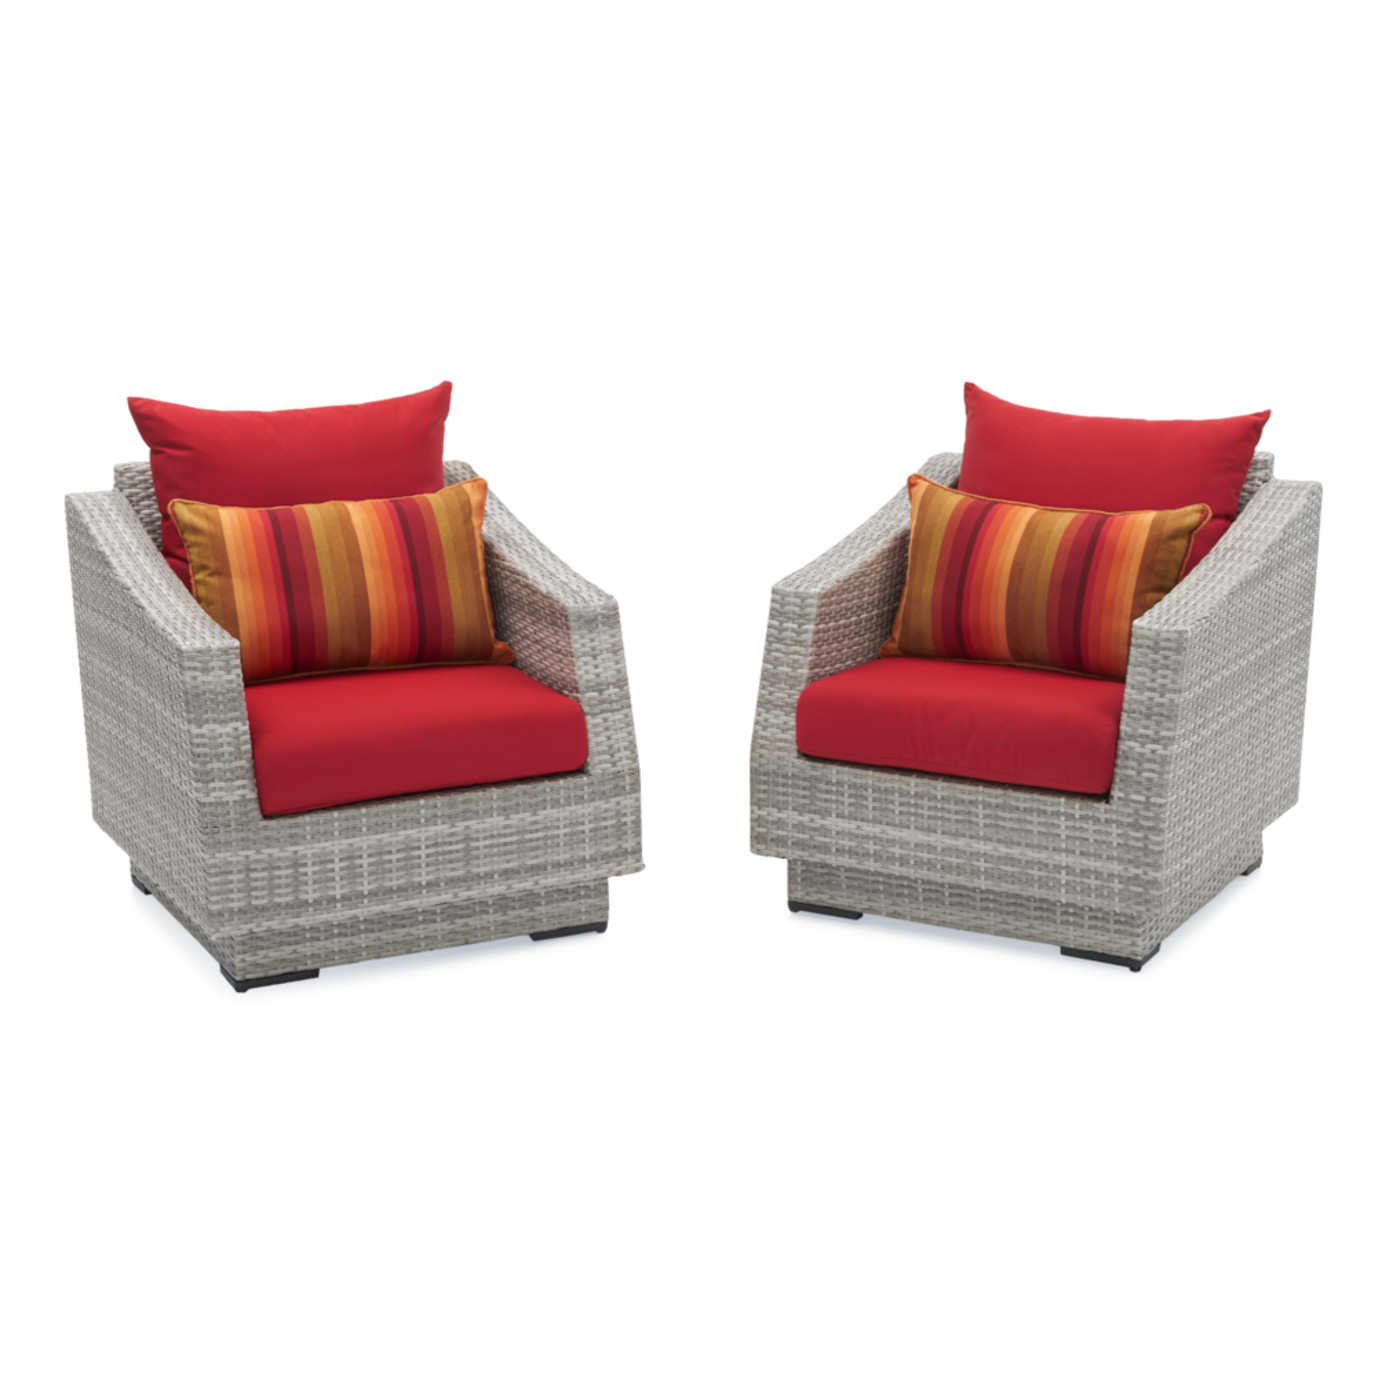 Cannes™ Club Chairs - Sunset Red